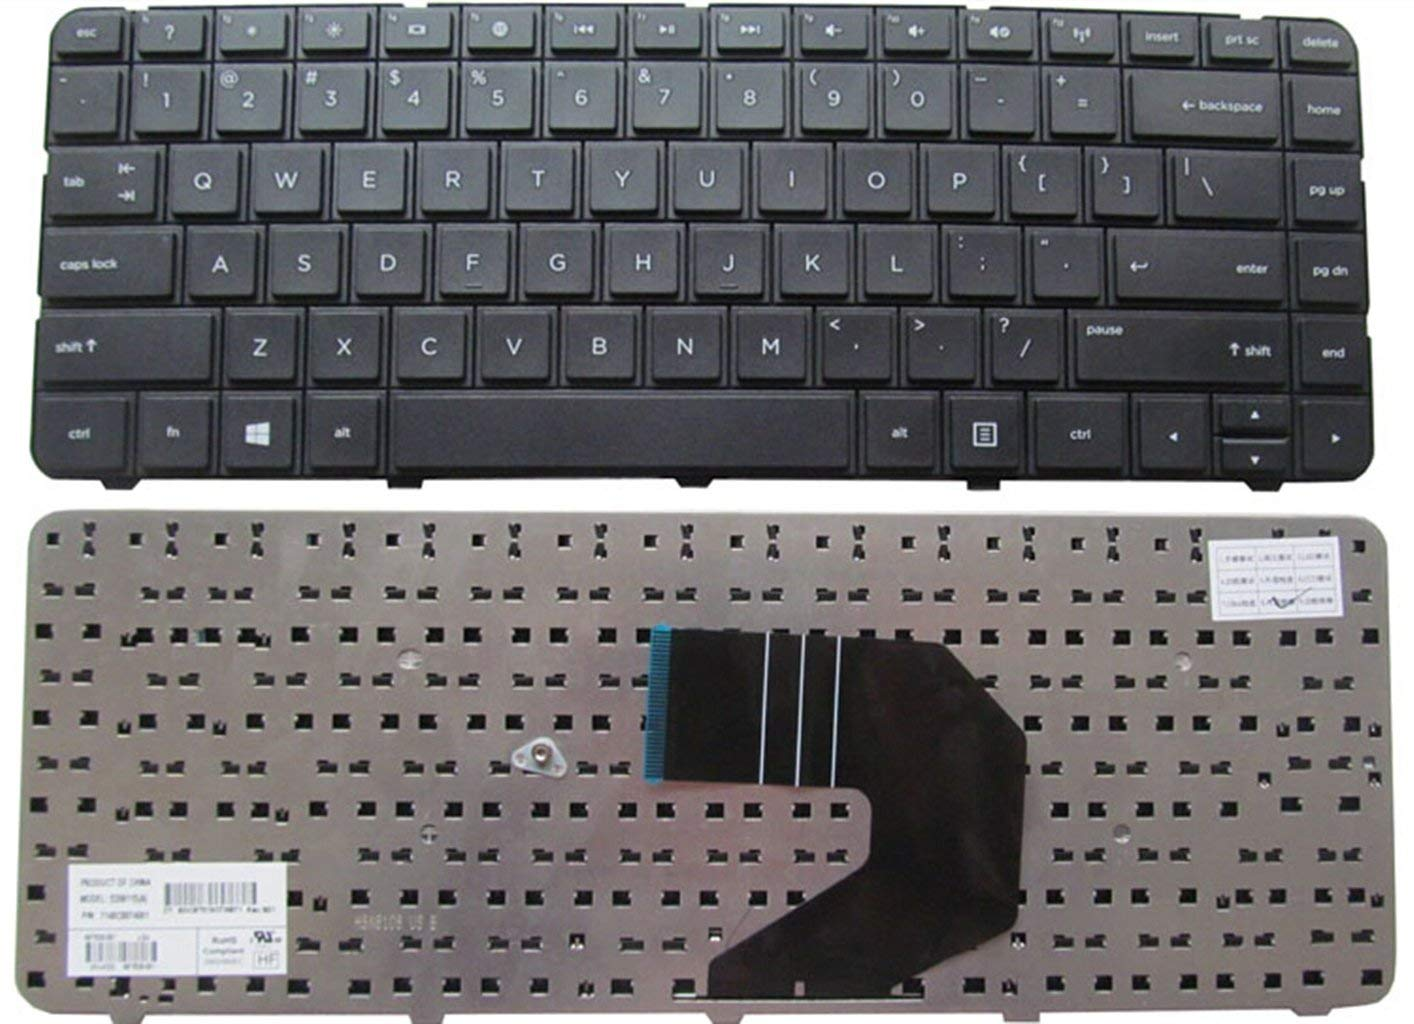 KEYSHEN Laptop Notebook Replacement Keyboard For HP G6 CQ43 450 CQ57 430 431 G4-1056TU 435 436 US Layout